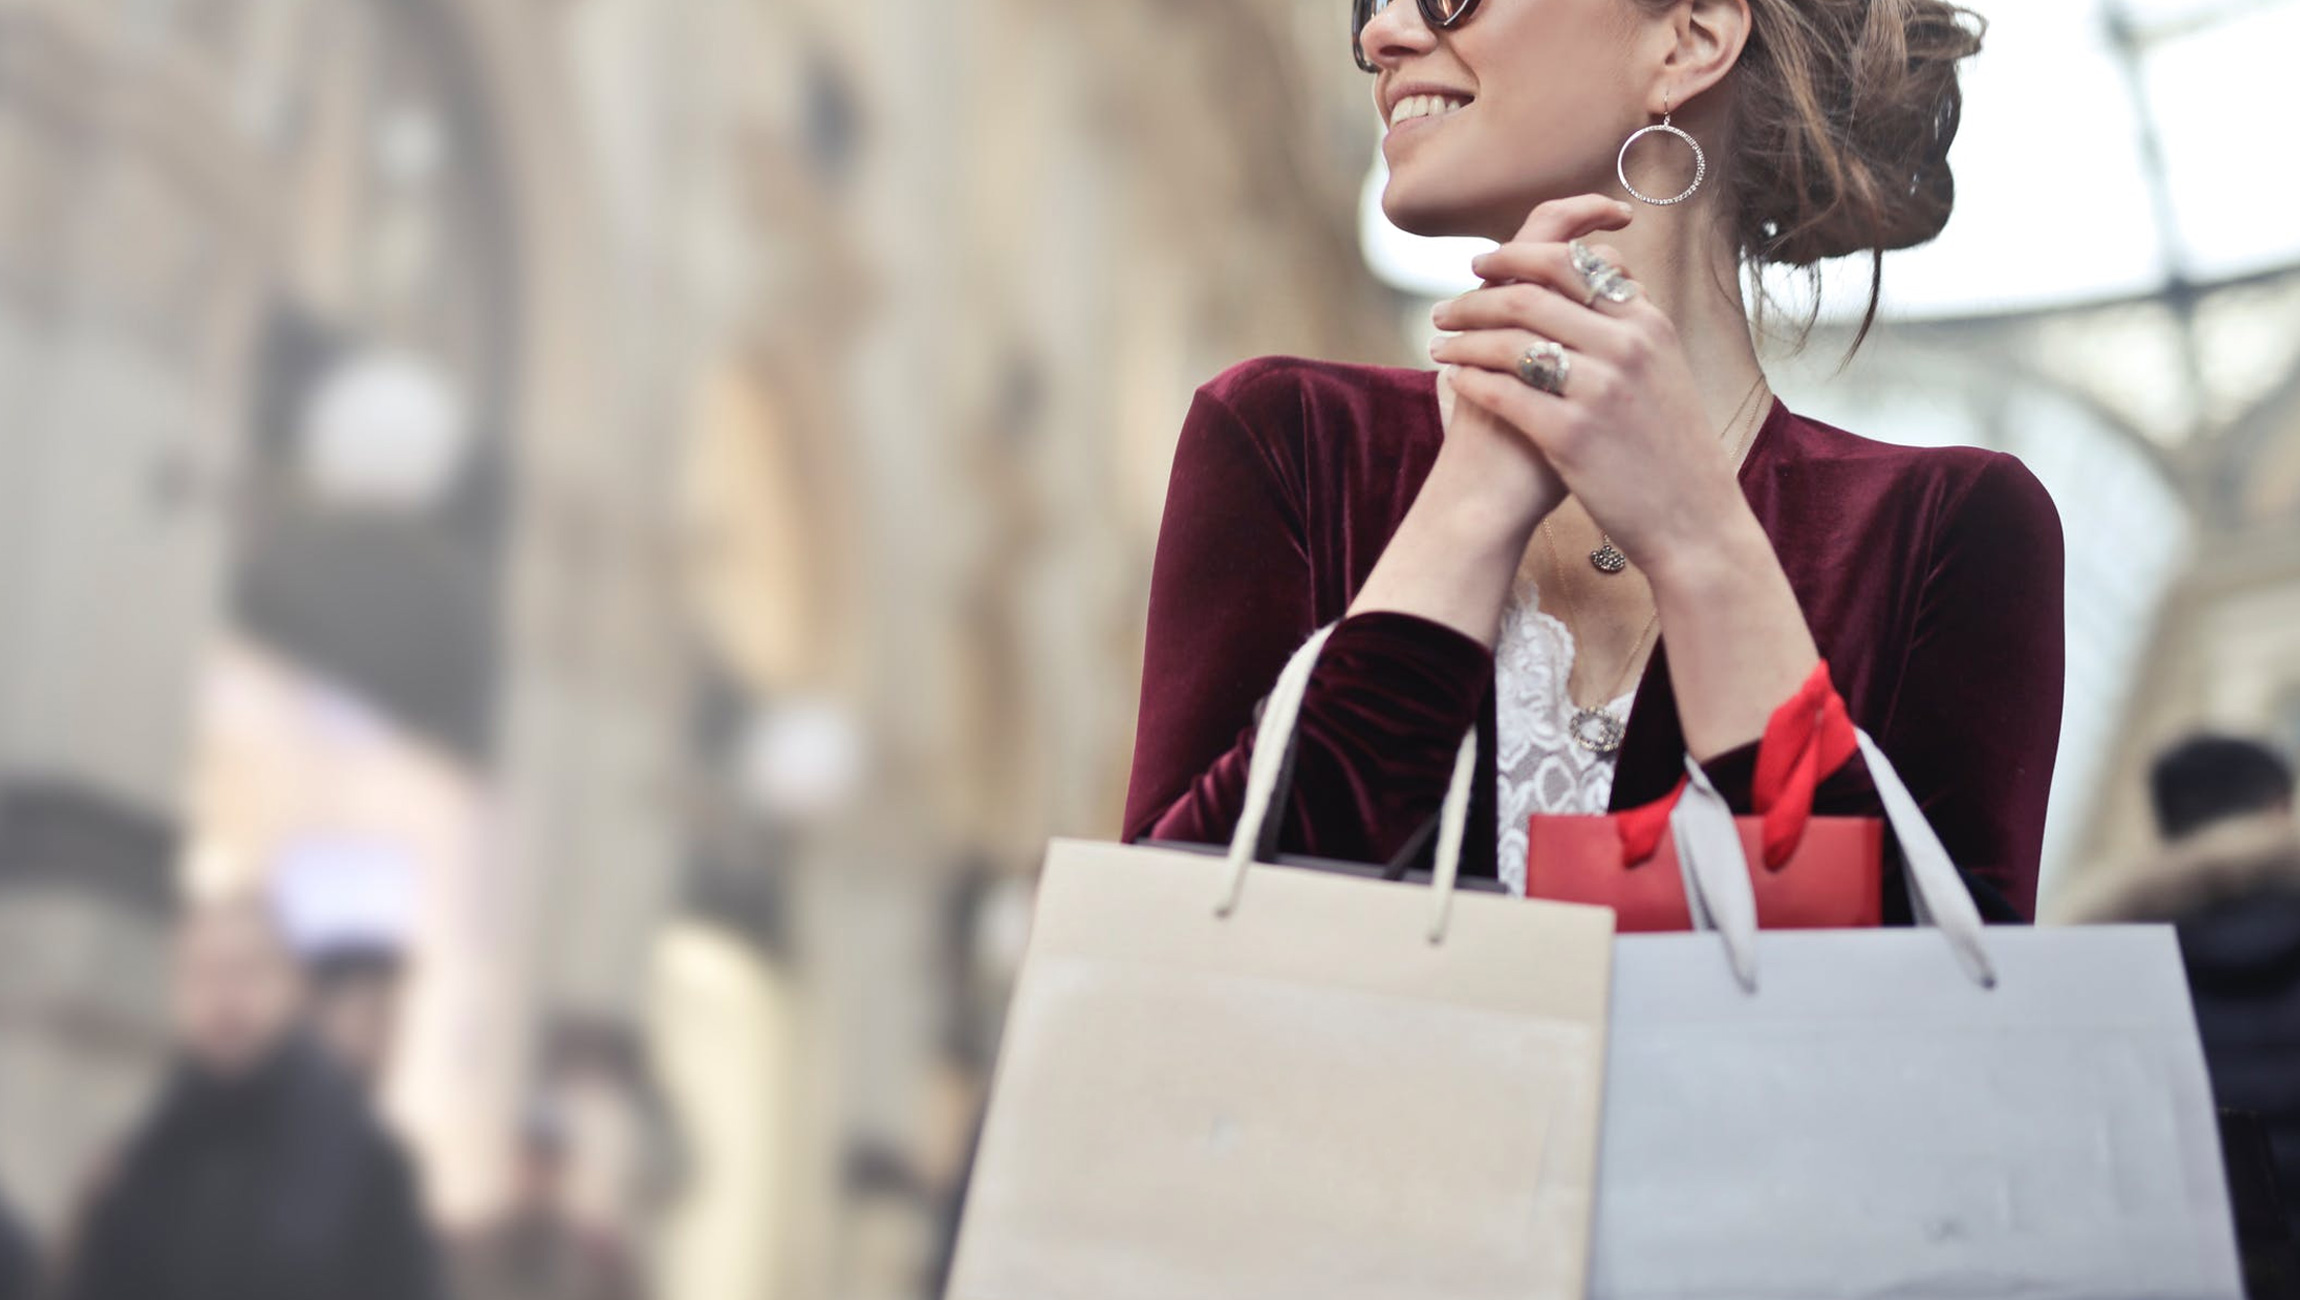 What's Happening to Brand Loyalty?